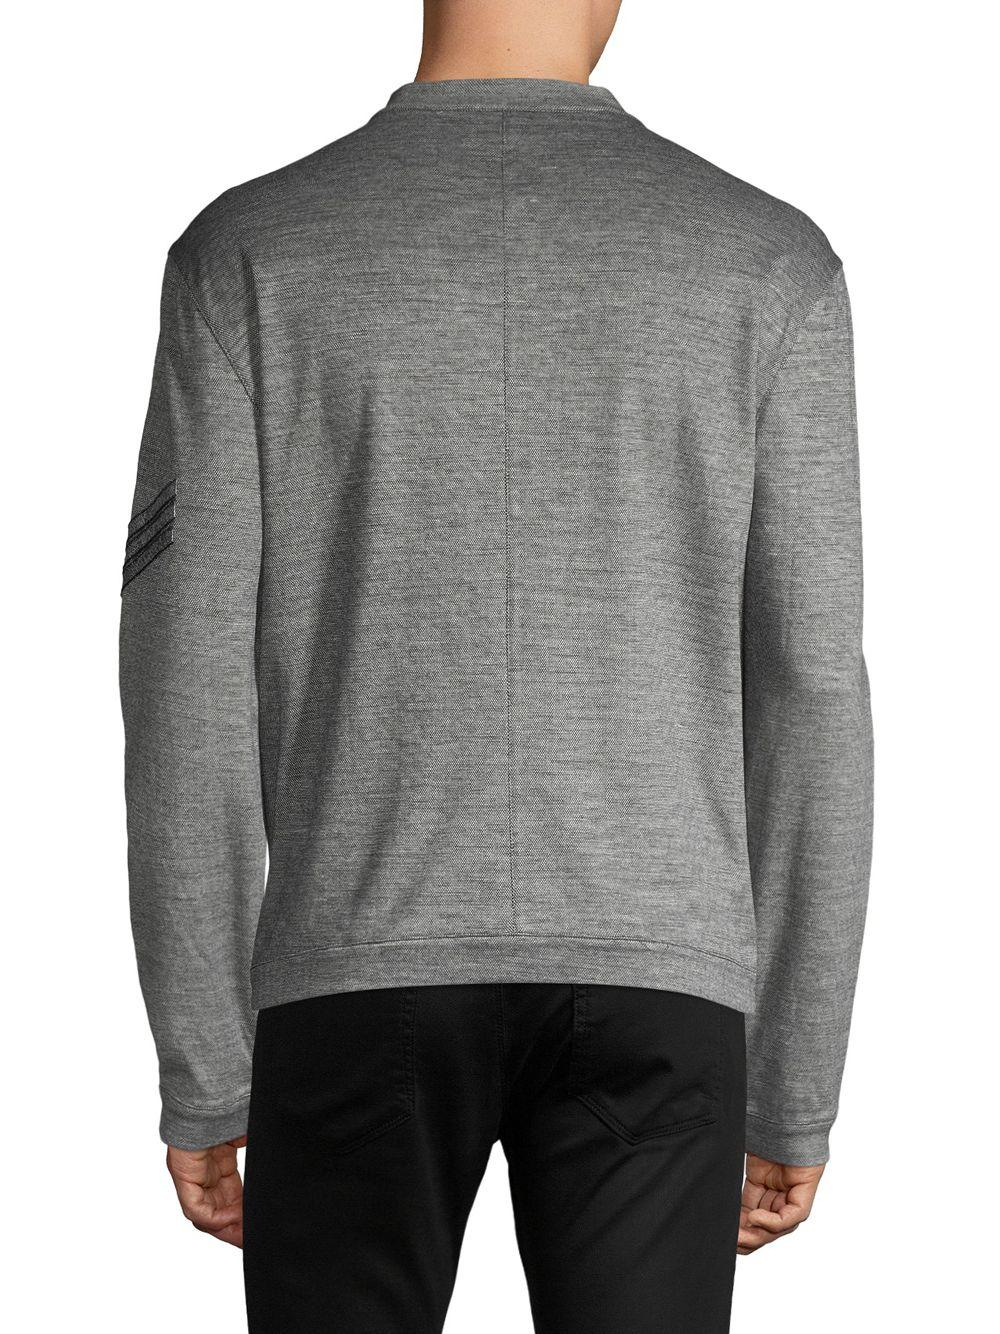 628e8b1574f5a John Varvatos Tonal Knit Bomber Jacket in Gray for Men - Lyst